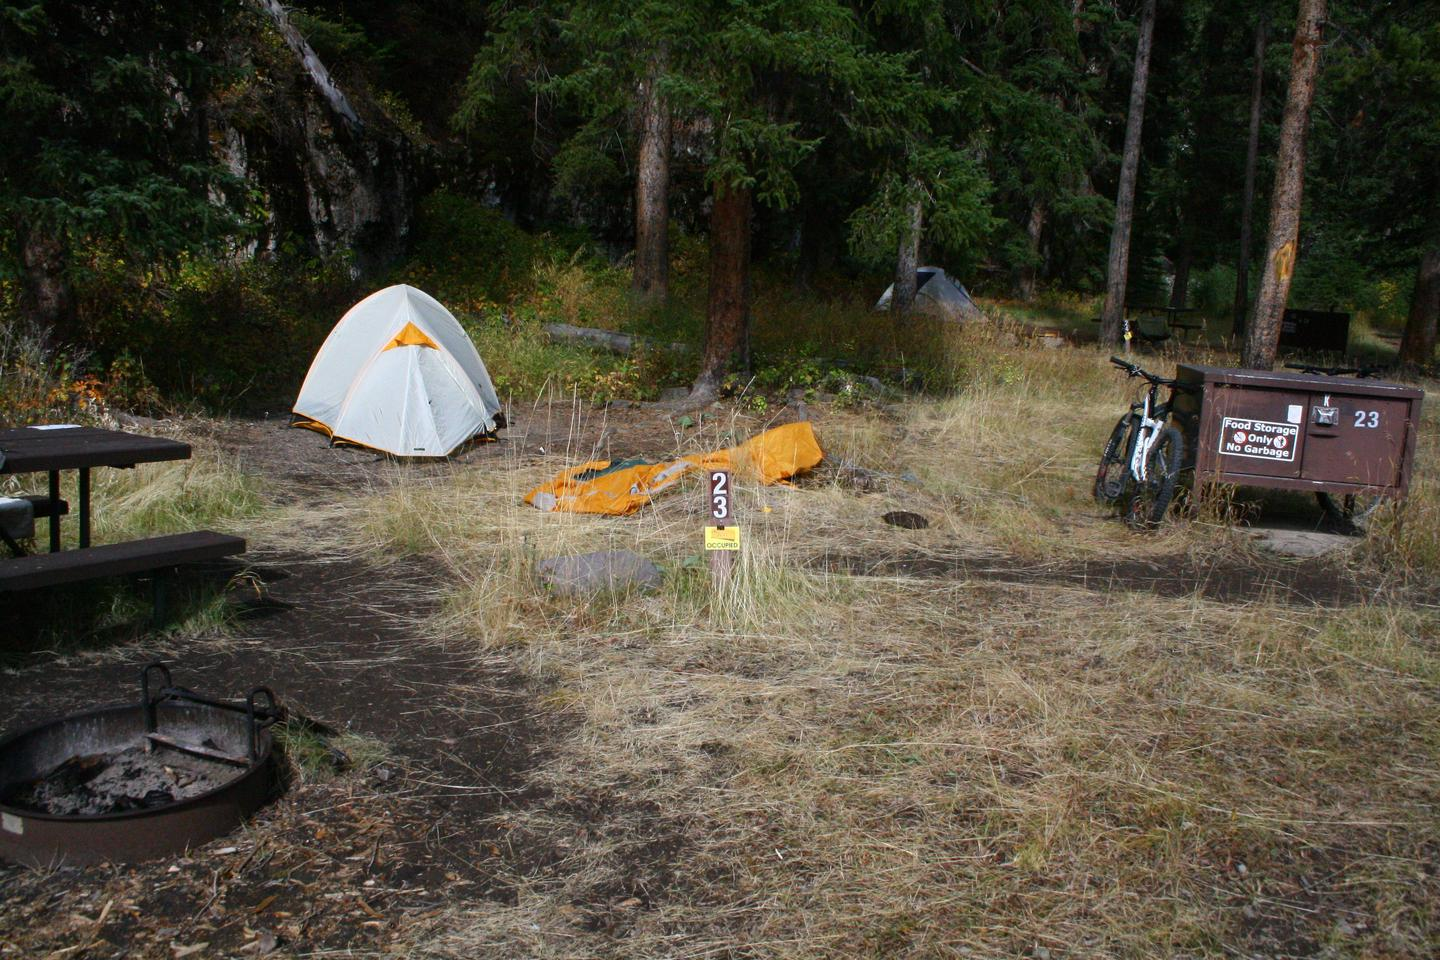 Pebble Creek Campground Site #23.Pebble Creek Campground Site #23 - walk-in site